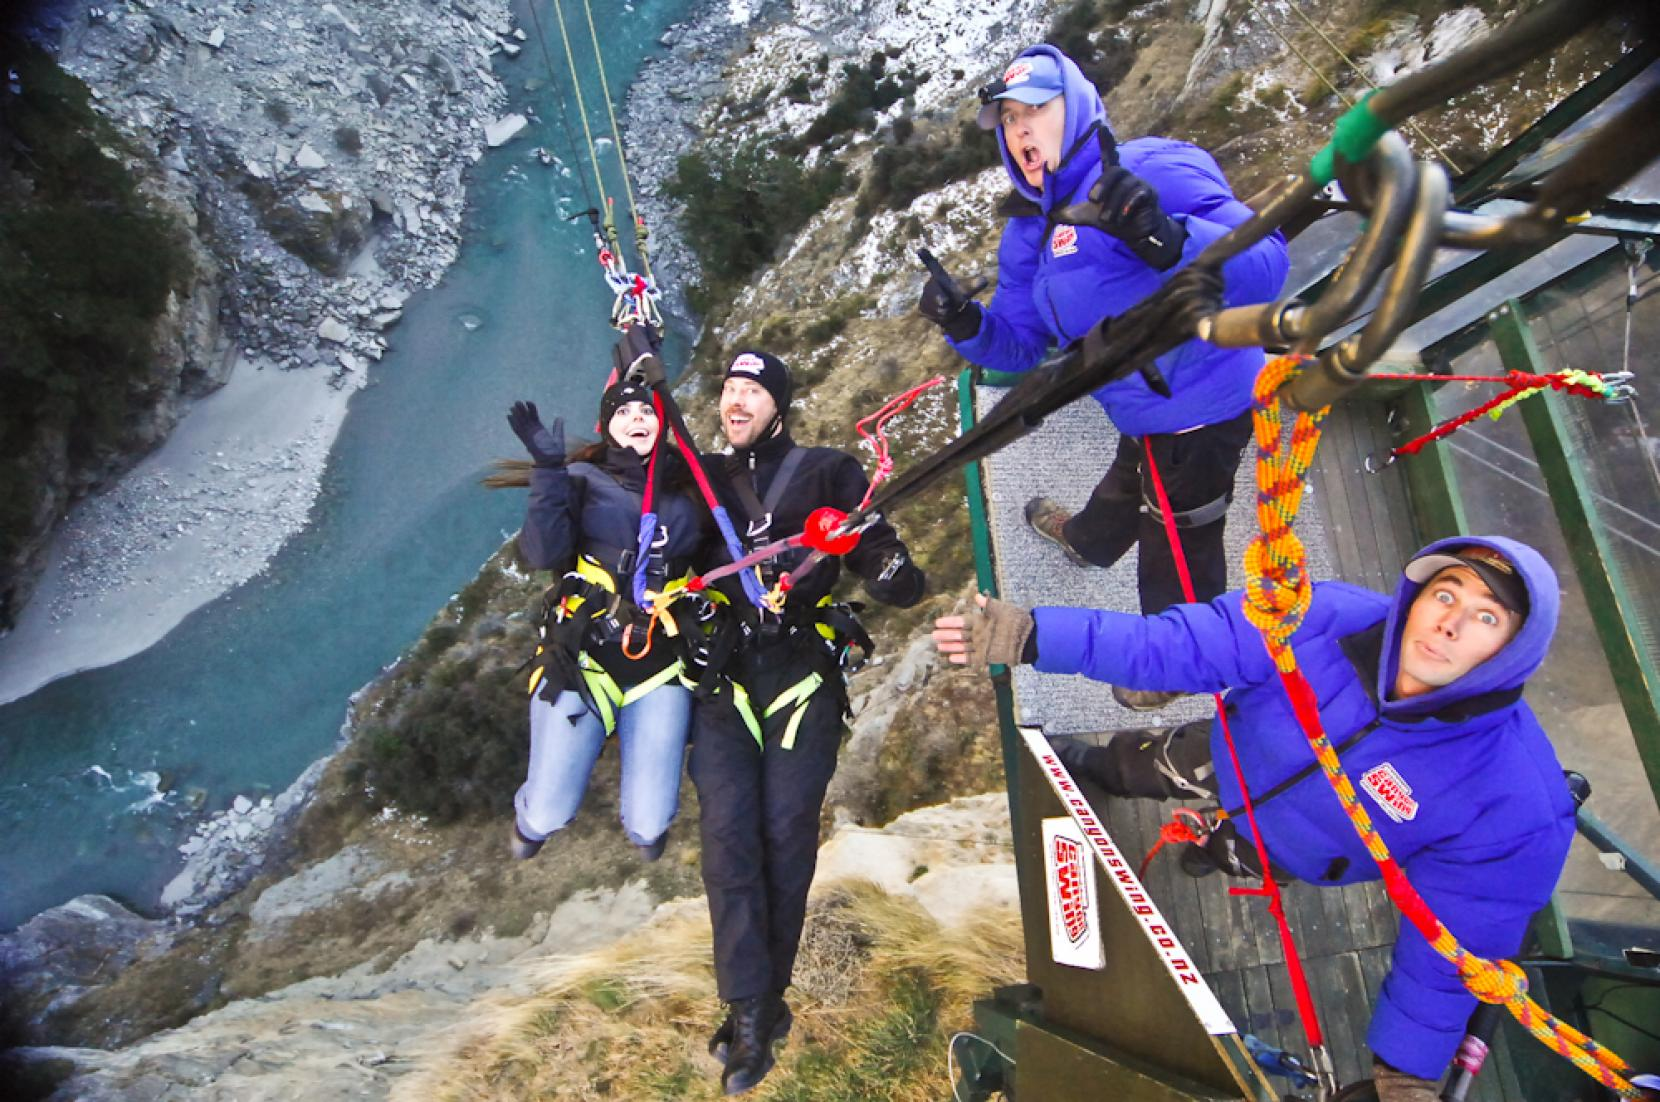 Shotover Canyon Swing Rush Brings American Couple Back For More Harness And This Time Physician Marc Helzer 40 His Wife Christina Maniaci 34 From Michigan Took To The Tandem Strung Upside Down Then Freefalling